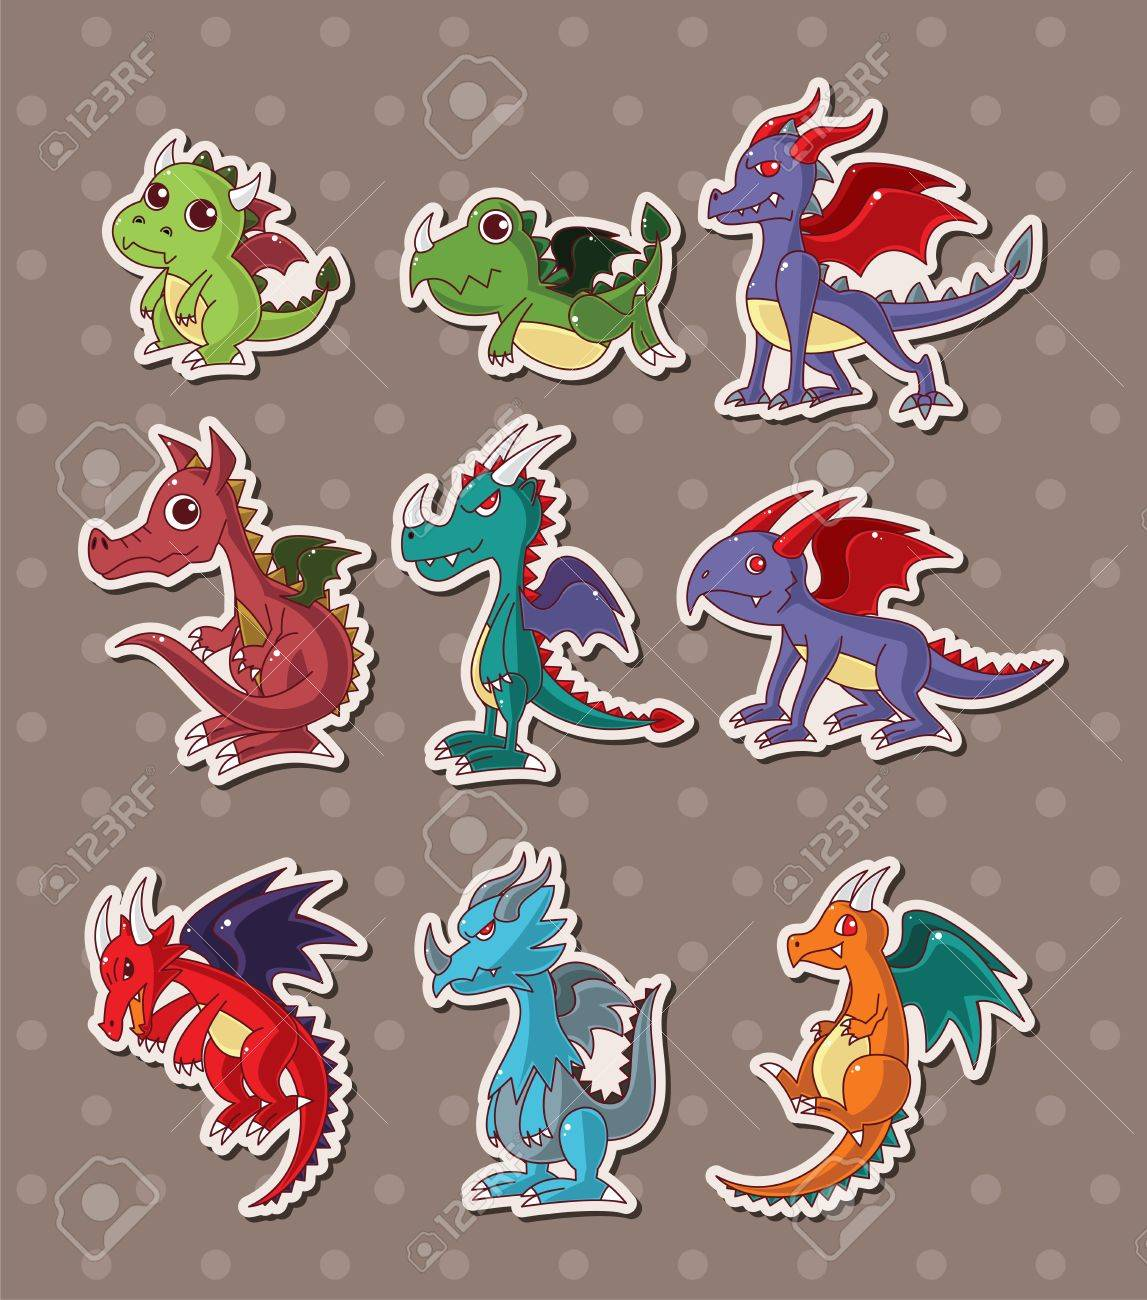 Image result for dragon stickers